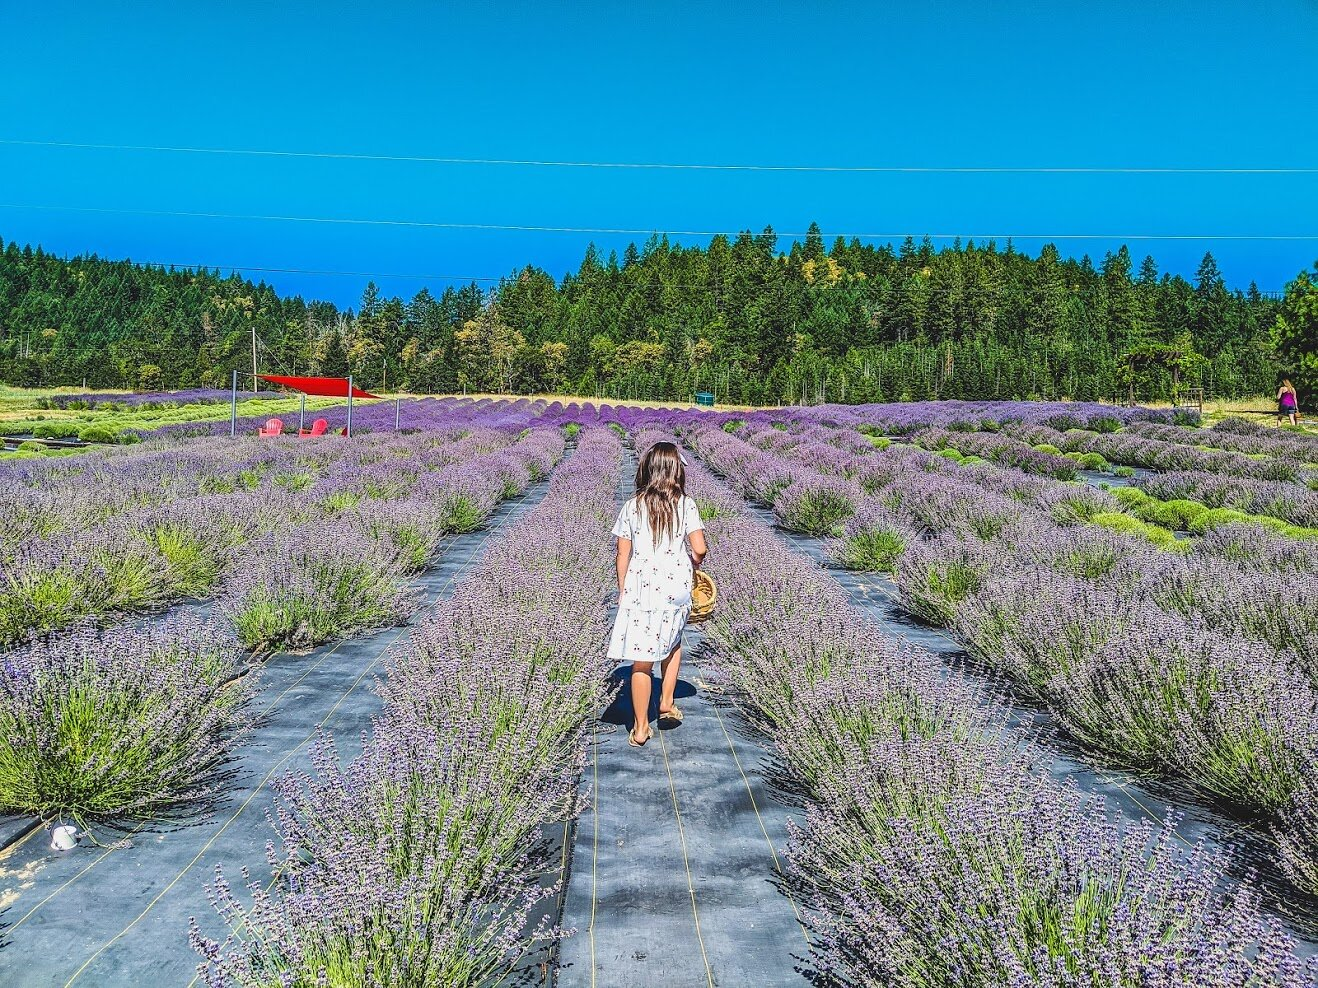 LAVENDER FESTIVAL FUN WITH THE FAMILY — What to do in